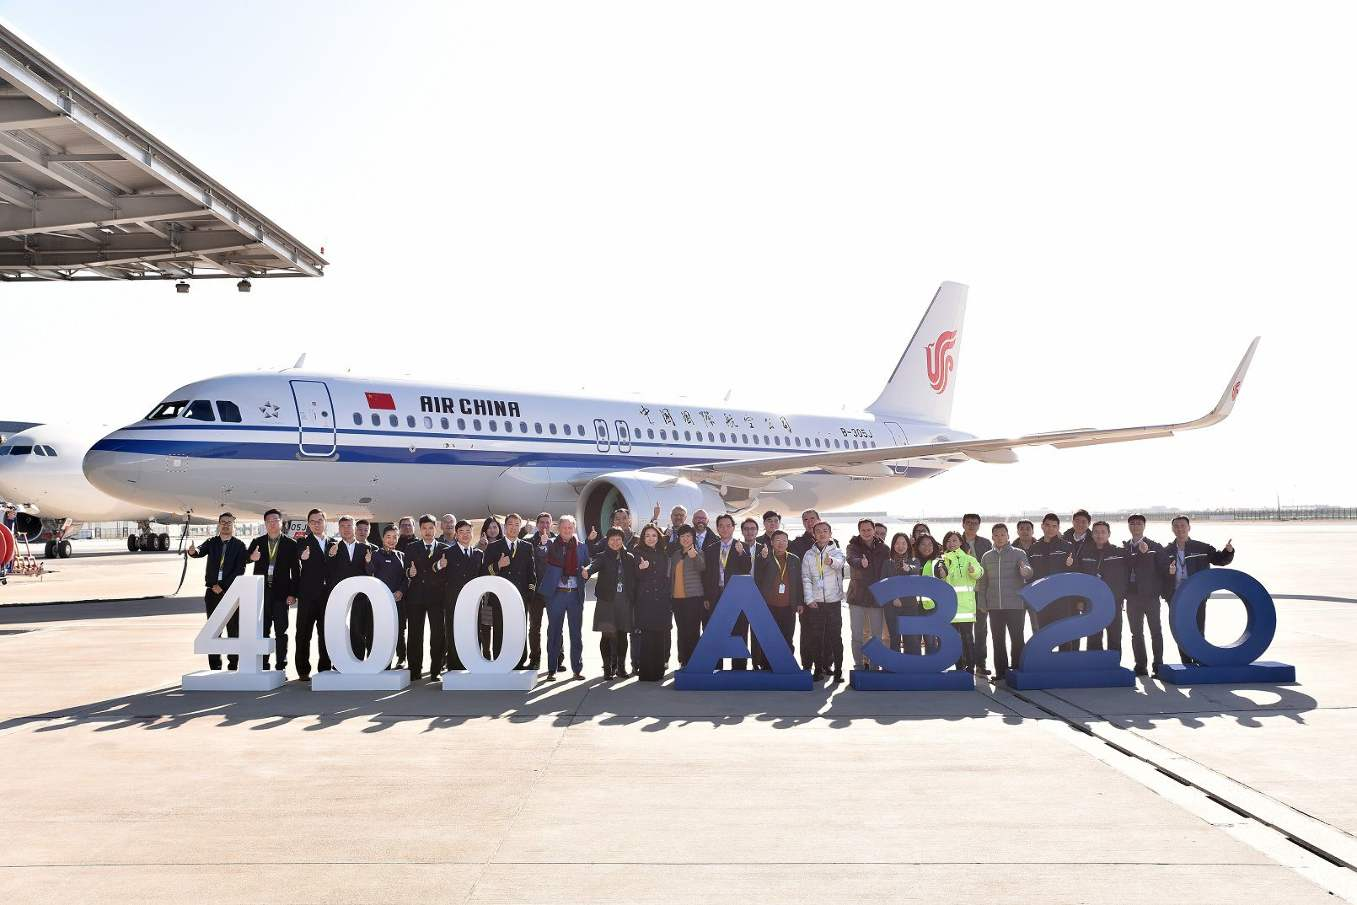 Airbus delivers 400th A320 from Tianjin